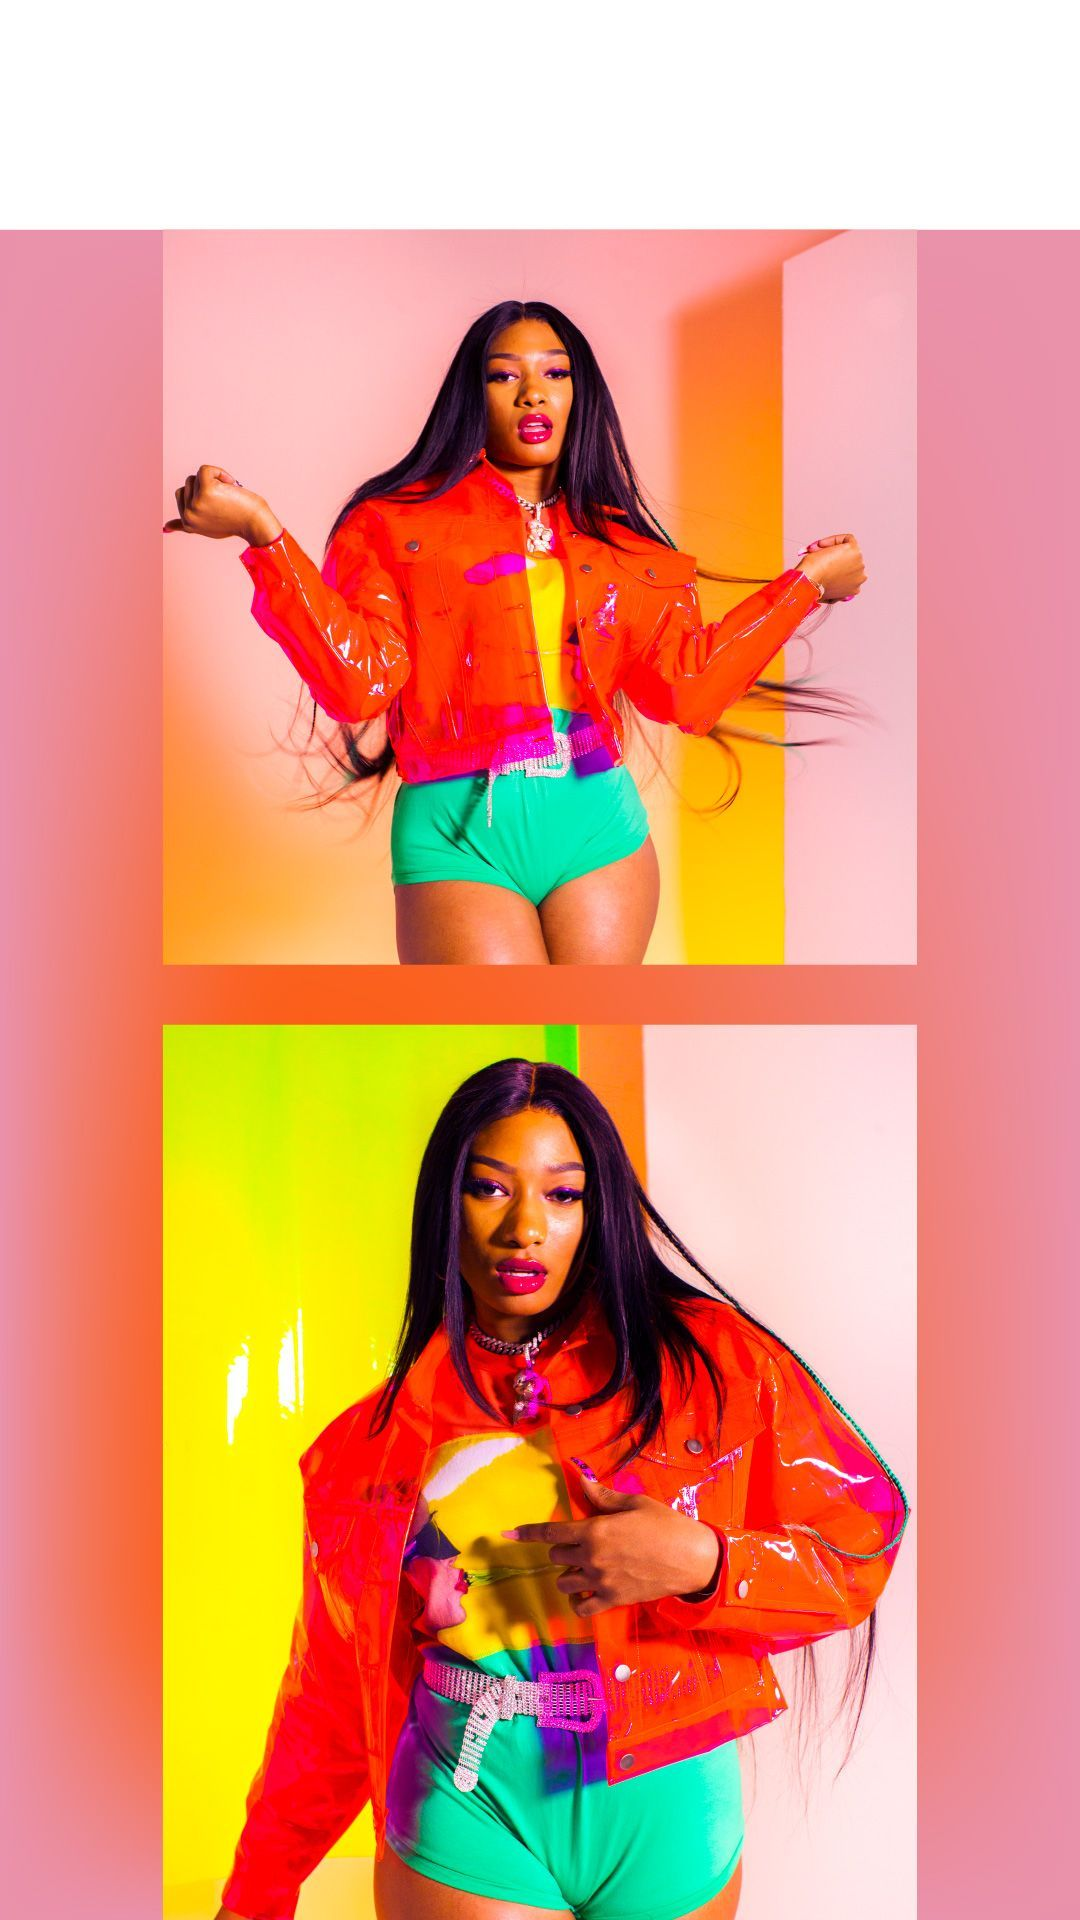 Rapper Megan Thee Stallion Is Not Who You Think She Is Stallion Megan Rapper